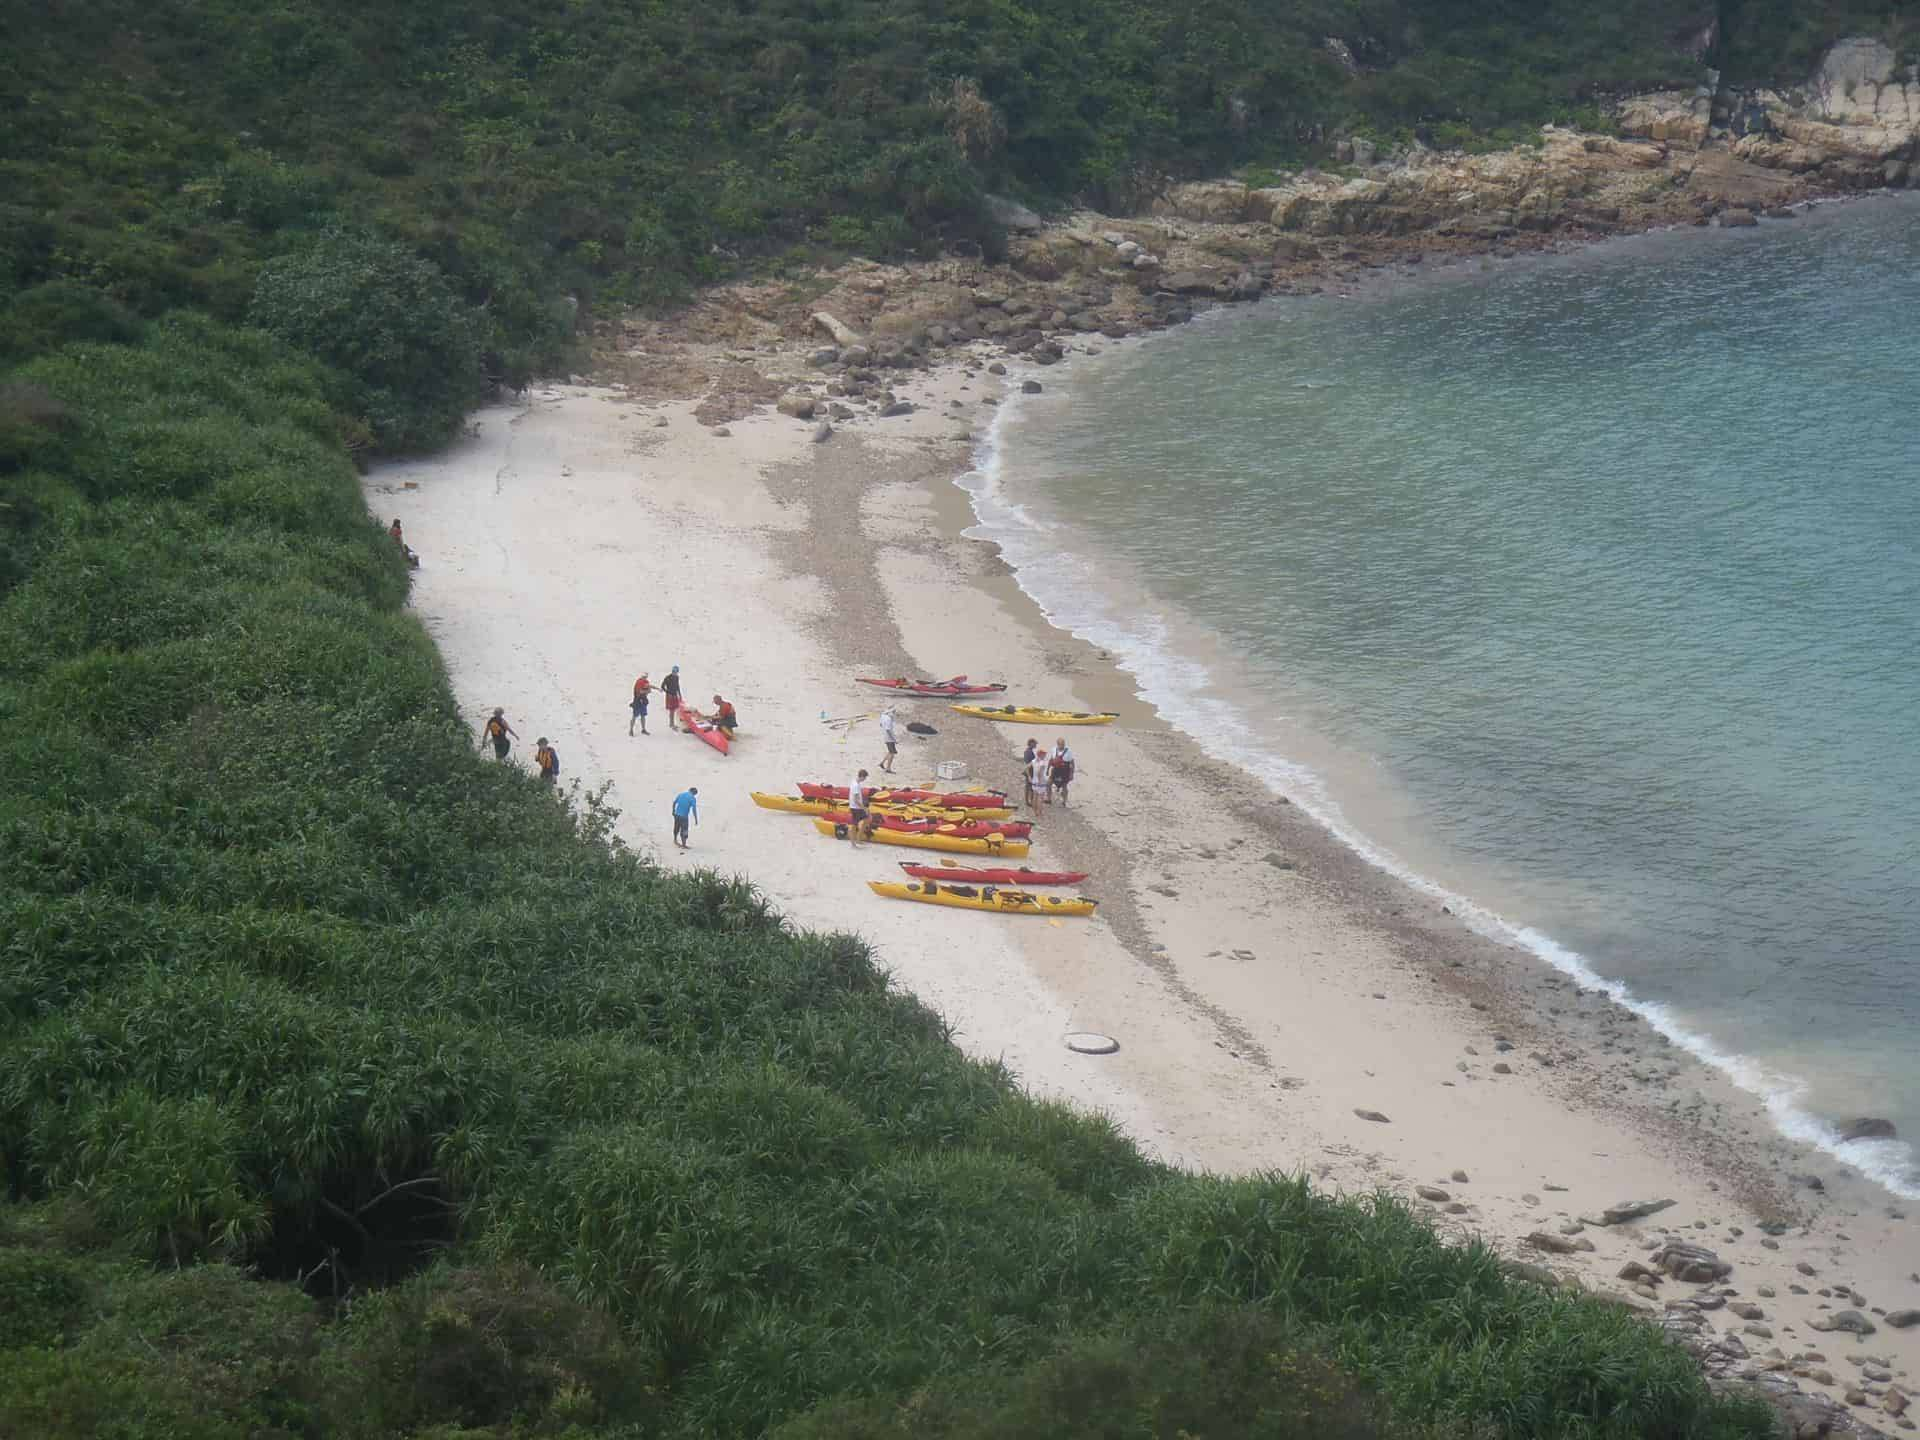 Remote sandy camping beaches